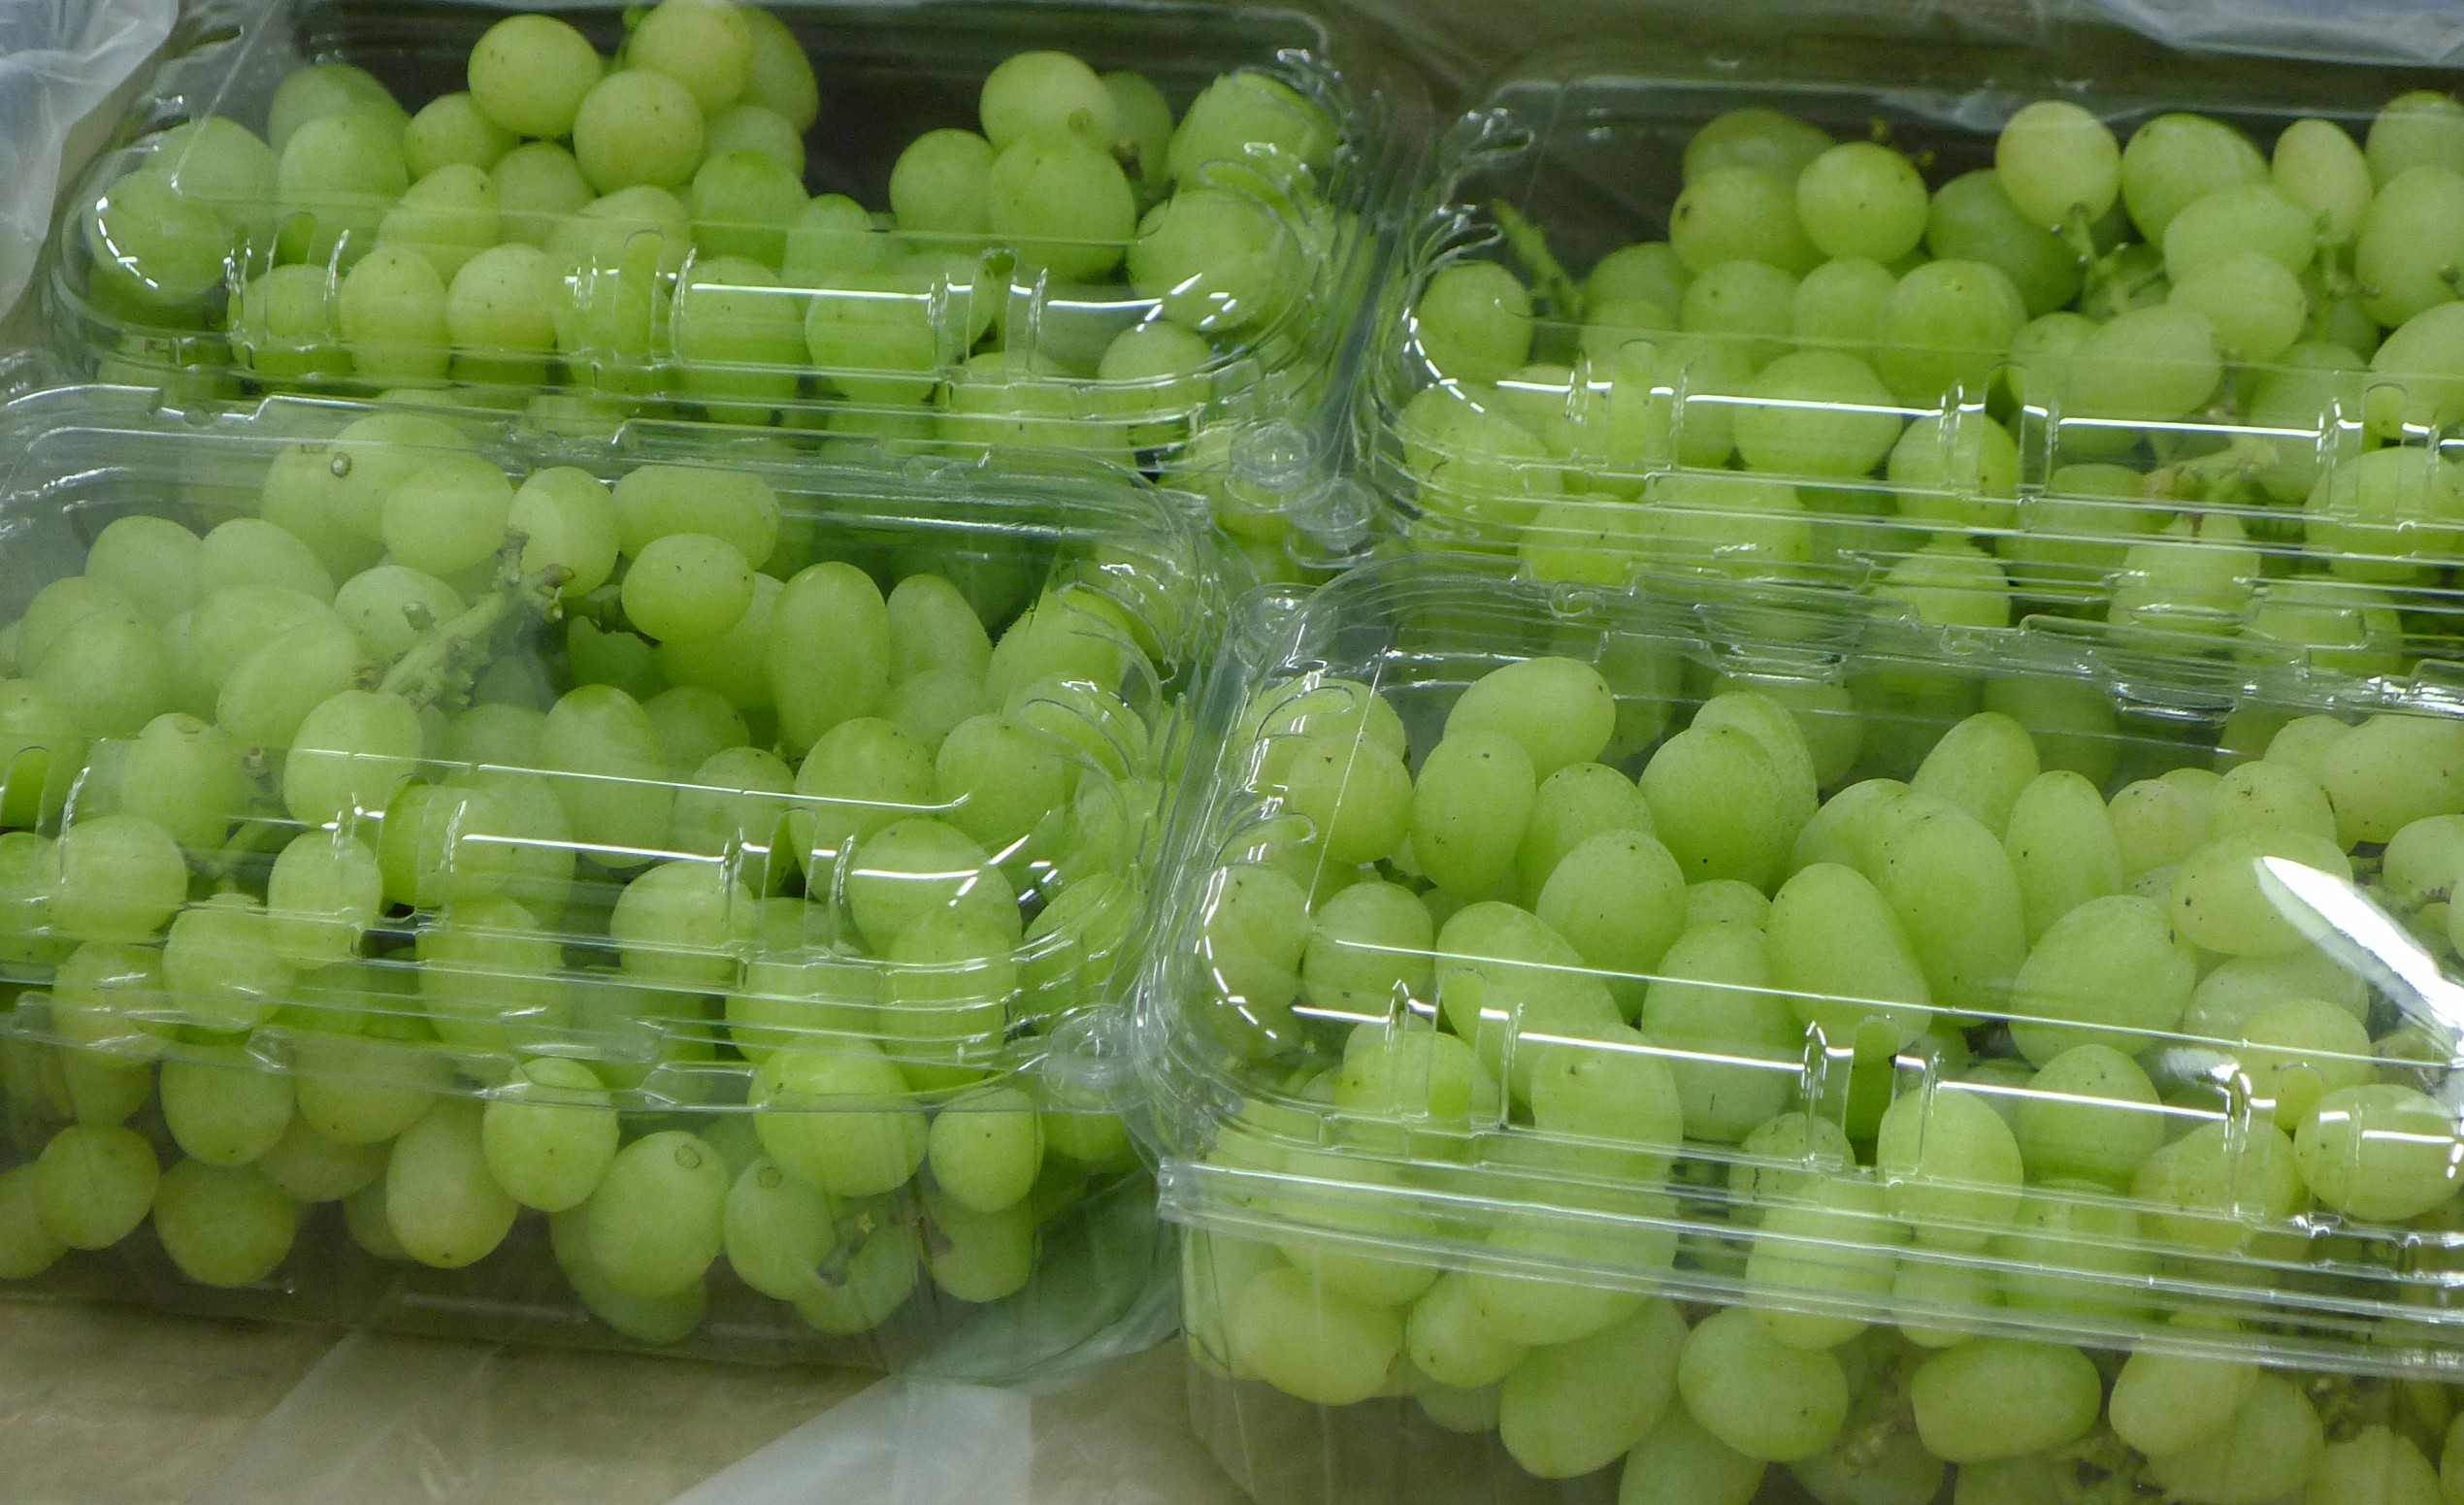 India's Mahindra says it is closer to becoming a major world player in grapes on agreeing to buy a 60% stake in Dutch global fruit distributor OFD Holding.